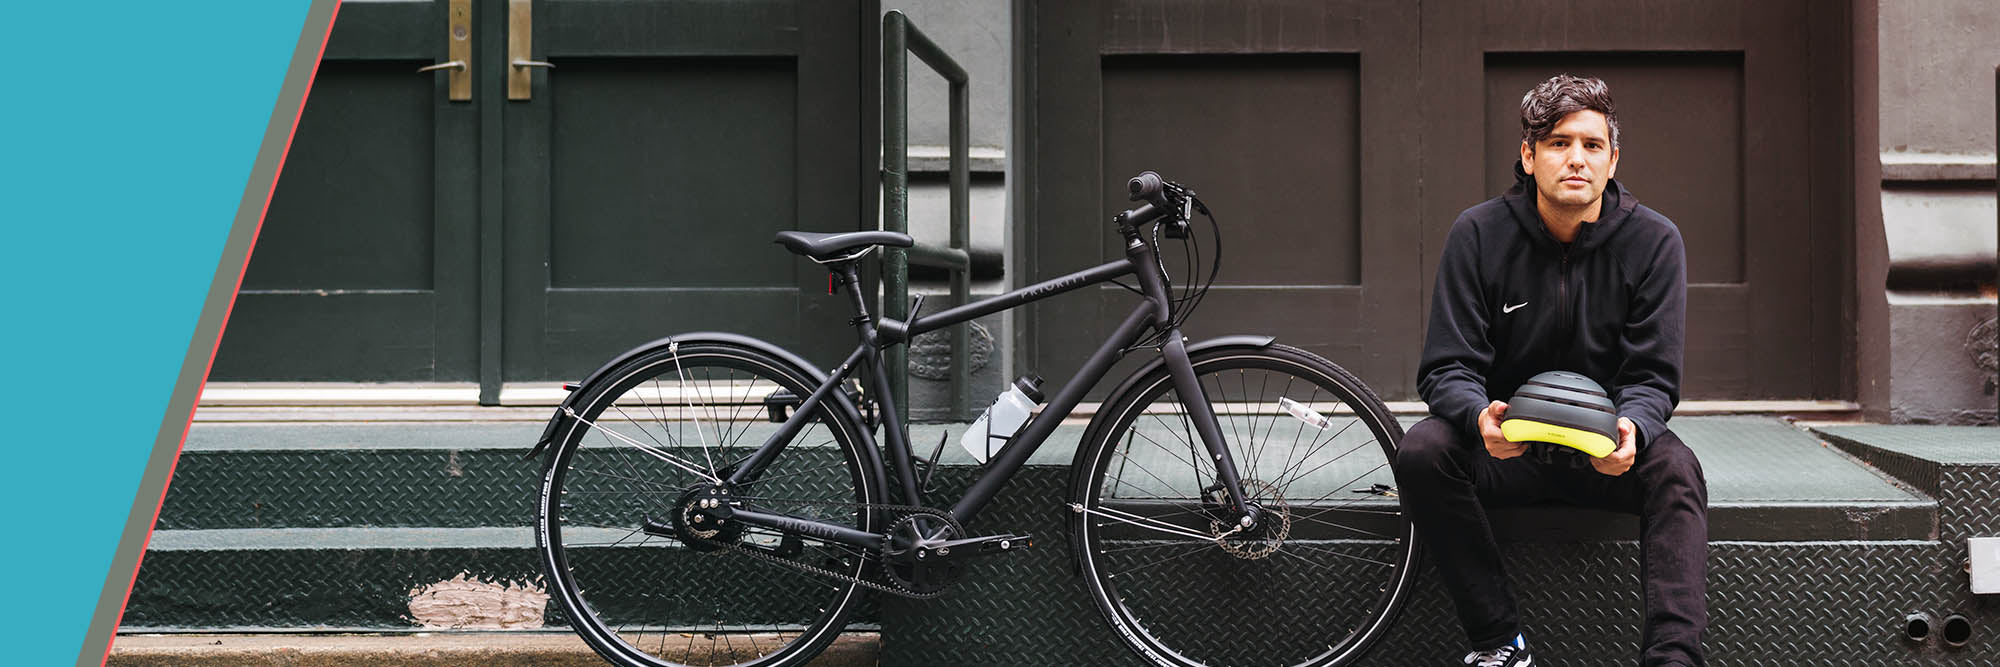 "<a href=""https://www.prioritybicycles.com/products/ace"">          <img alt=""""HOME"""" src=""https://cdn.shopify.com/s/files/1/1245/1481/files/ACE_HOME_v2.png?v=1609605402""></a>"